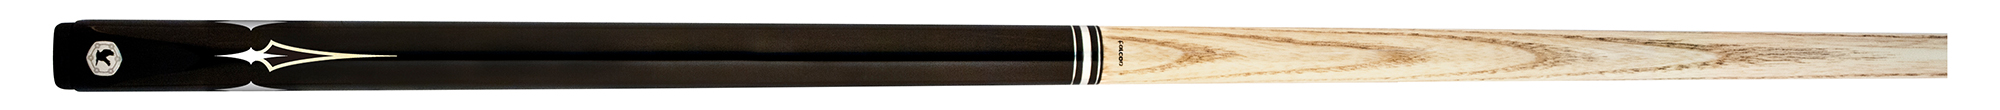 SK0129: Falcon Snookercue 3/4 model FSCR-6 black/inlay #1